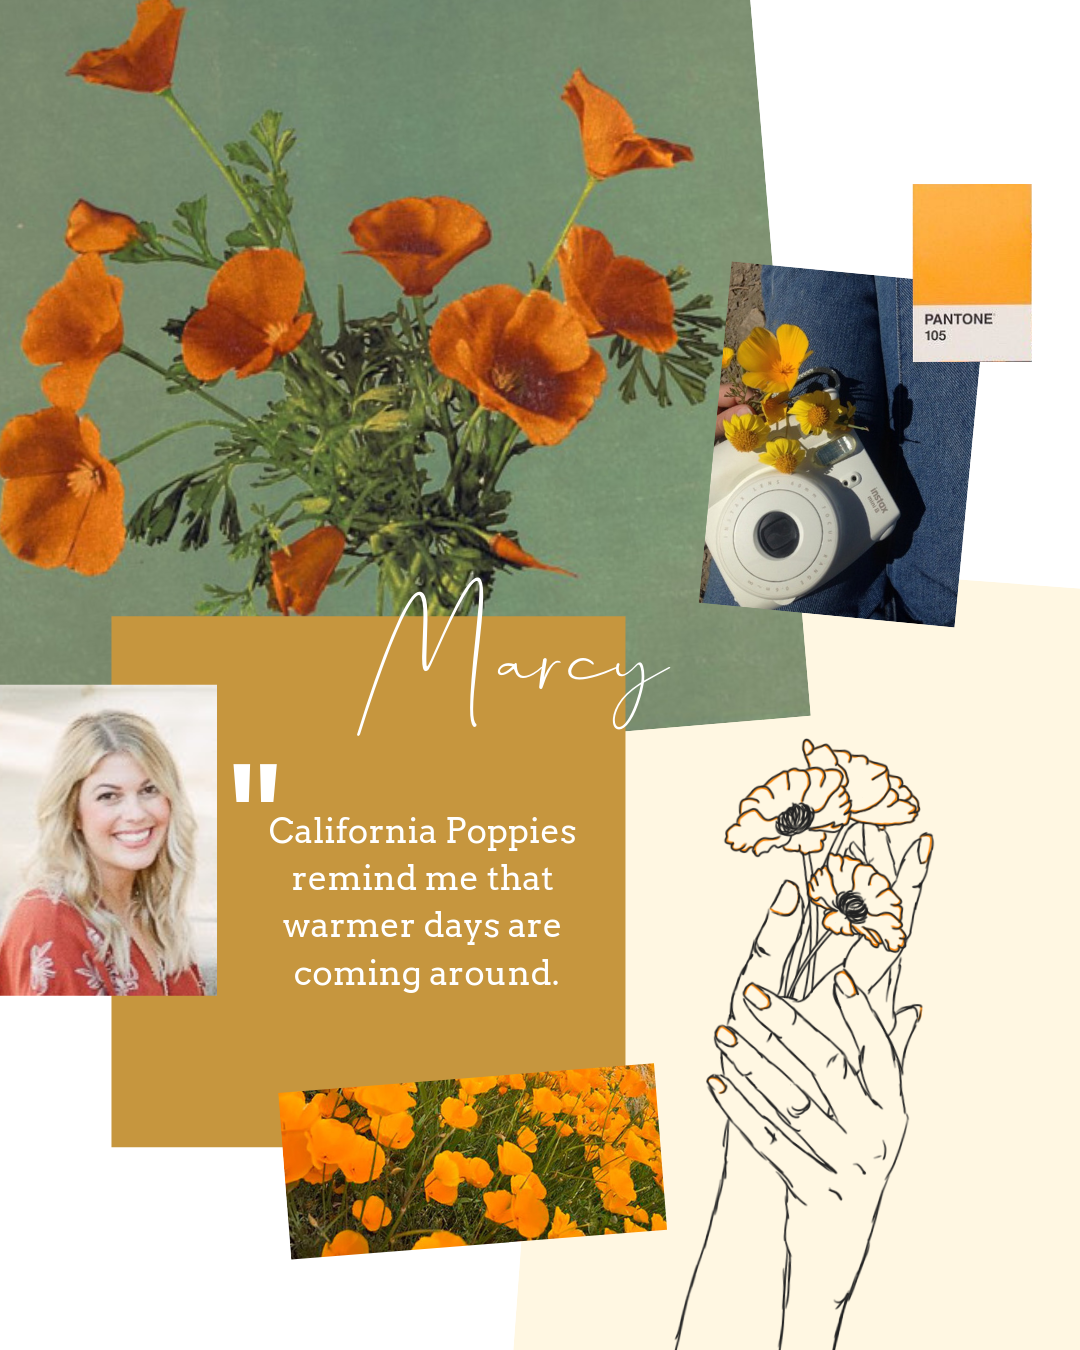 Marcy  is thrilled about the California poppies blooming, because she's  so  over the cold weather. She's loving the new  Target Smartly Citrus Grove  cleaner for her humble abode, which we find is becoming a quick favorite for Targét lovers alike.